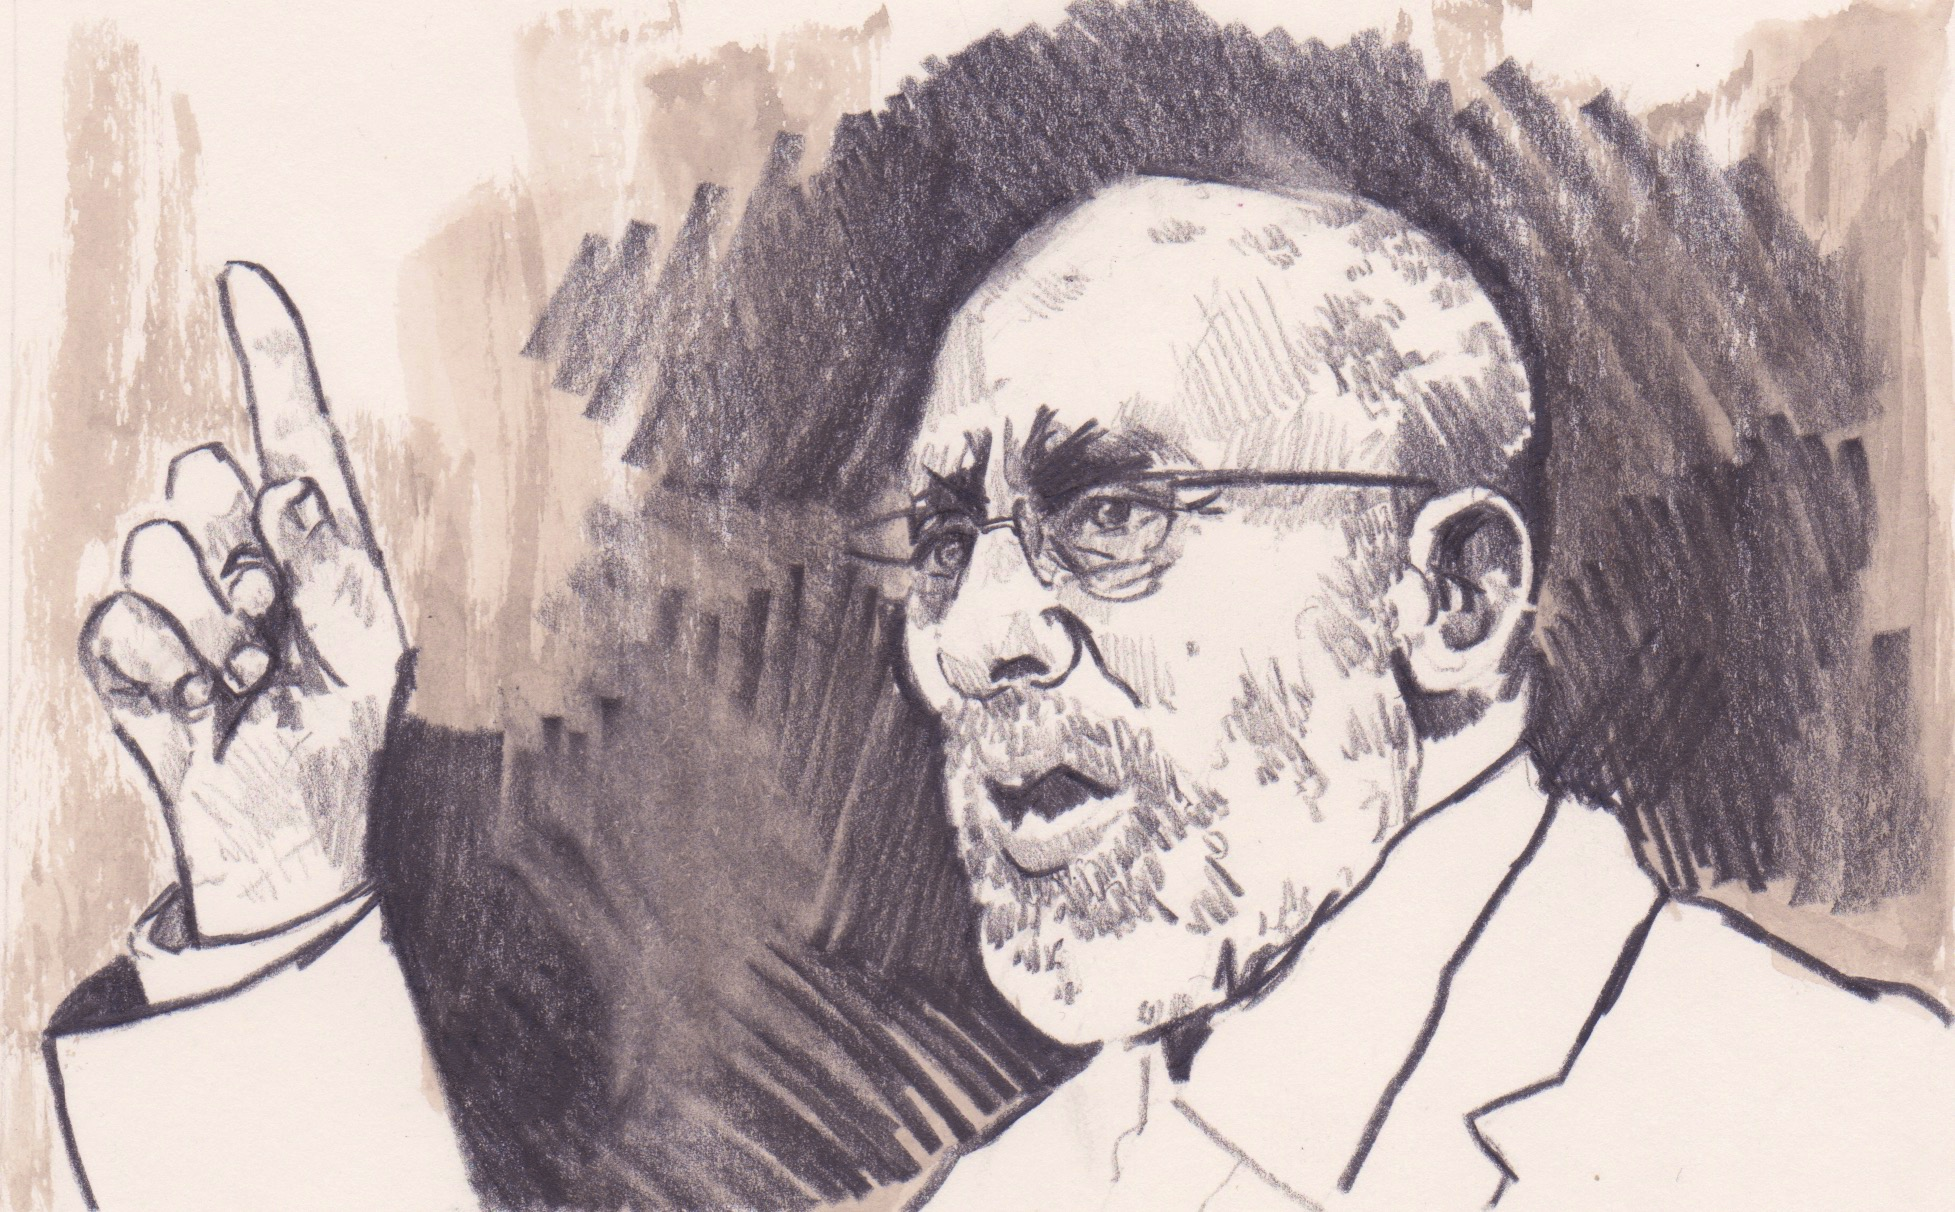 20/03/15Mohammed Badie, the leader of the Muslim Brotherhood has been condemned to death for planning attacks against the Egyptian state